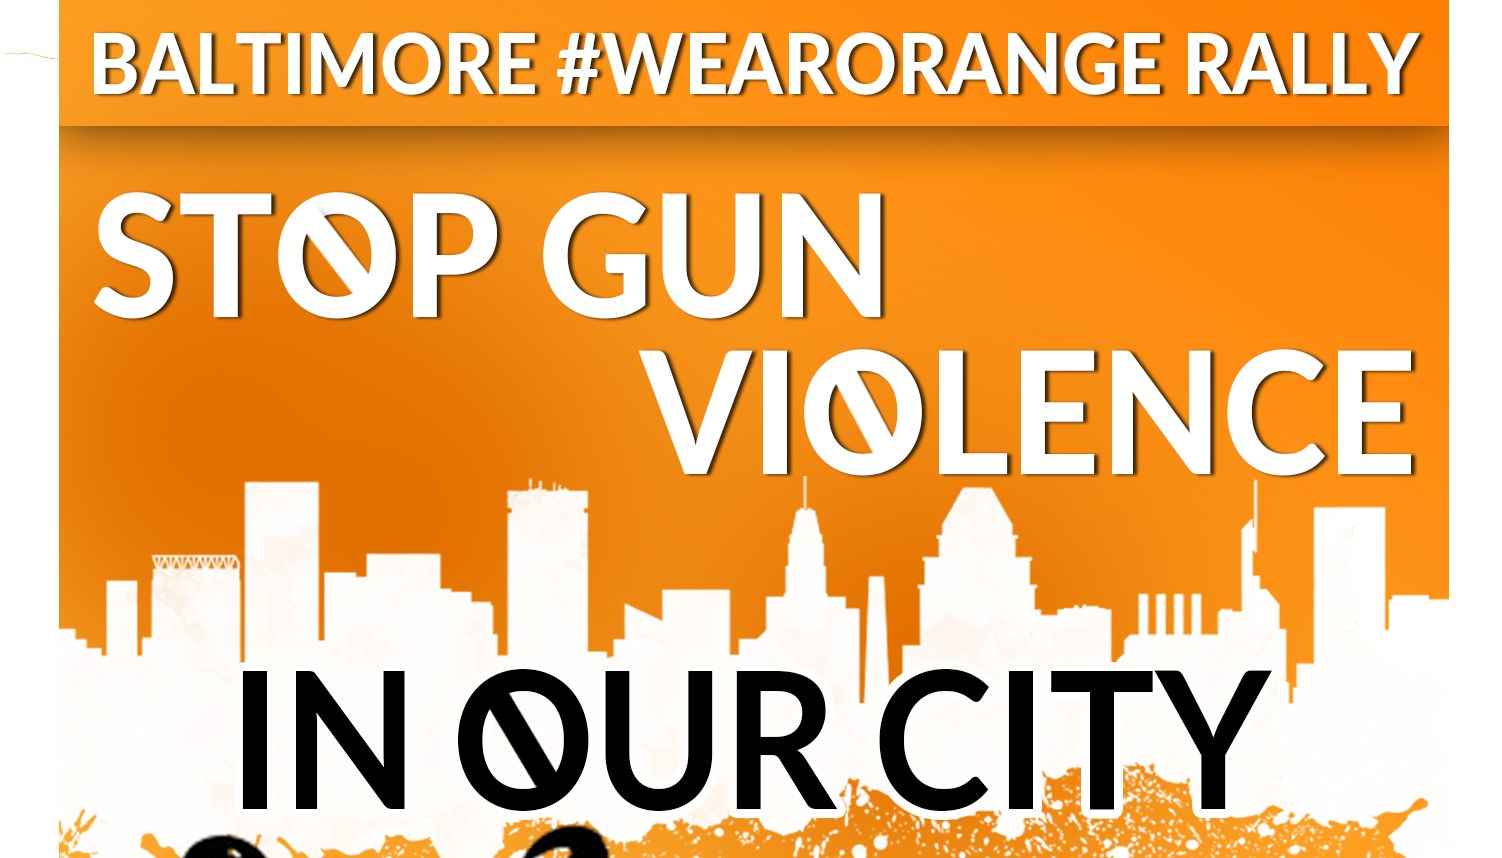 Gun Violence Awareness Day Rally in Baltimore